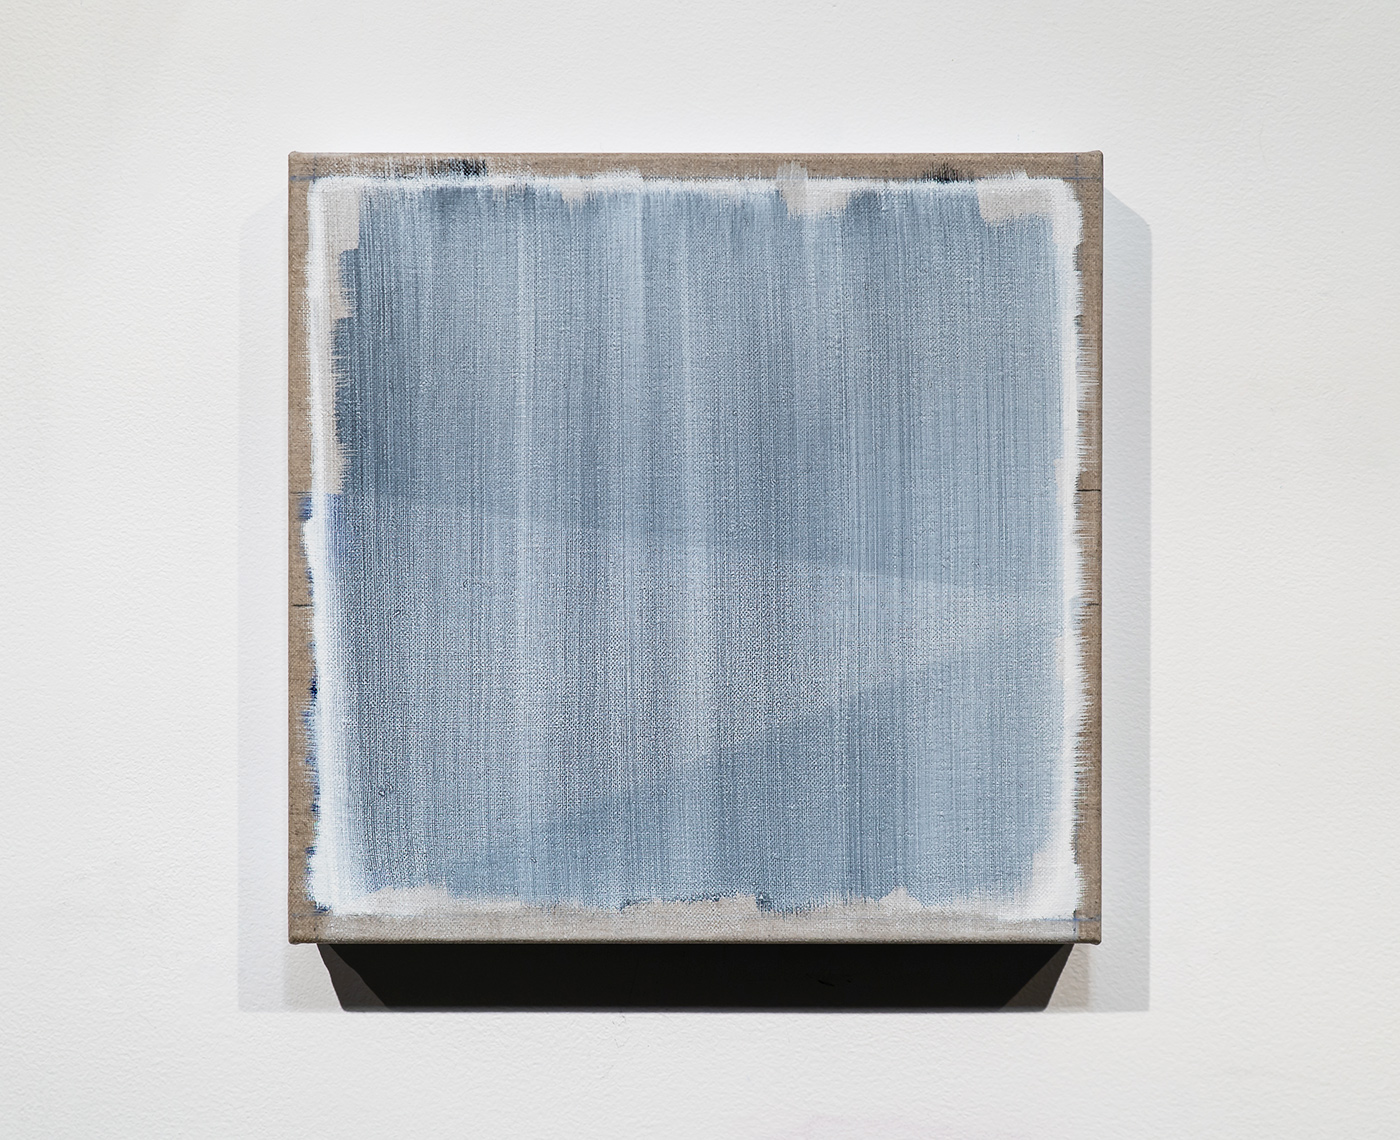 """Randy Gibson: Rational Wedge 21:28 (White) - 13.5""""x14"""" - Oil, Chalk, Graphite, and Acrylic Dispersion on Linen - 2018"""